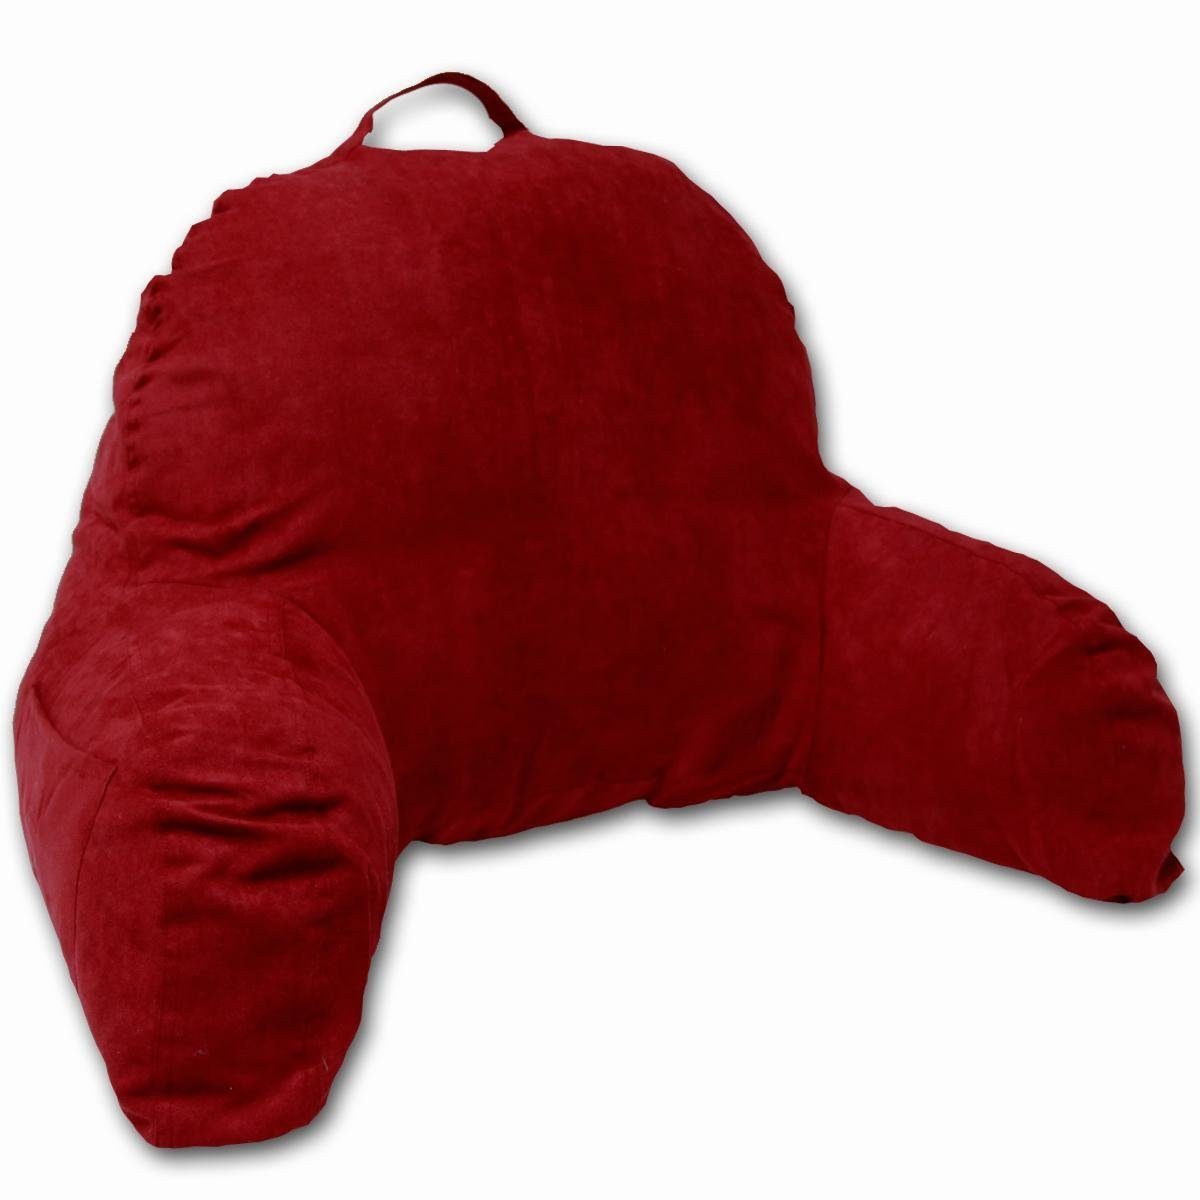 Red backrest pillow with arms